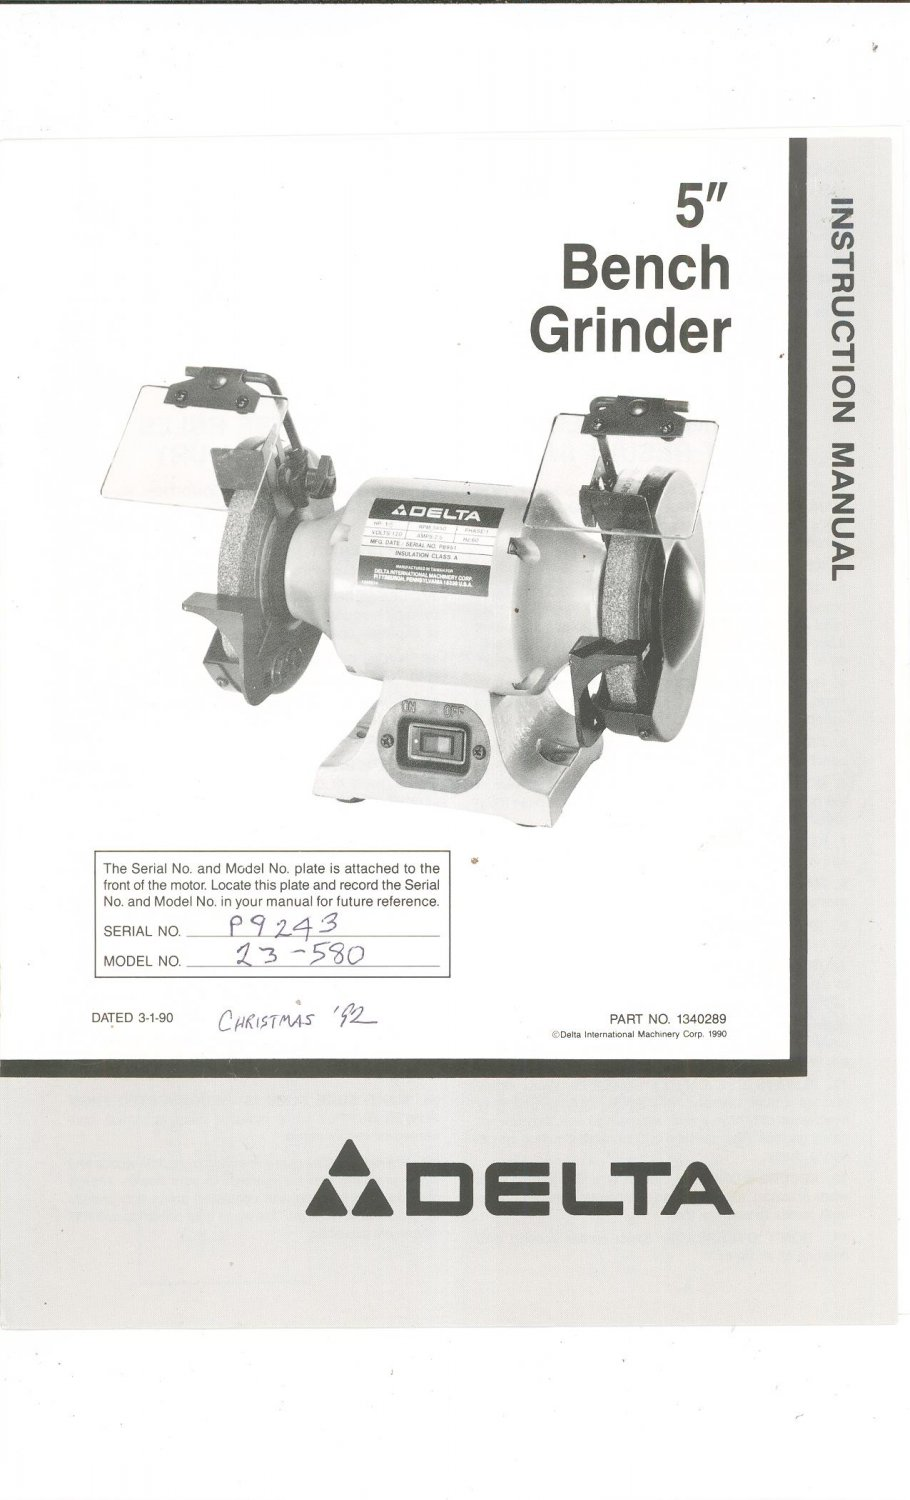 medium resolution of delta 5 bench grinder model 23 580 owners manual with parts list